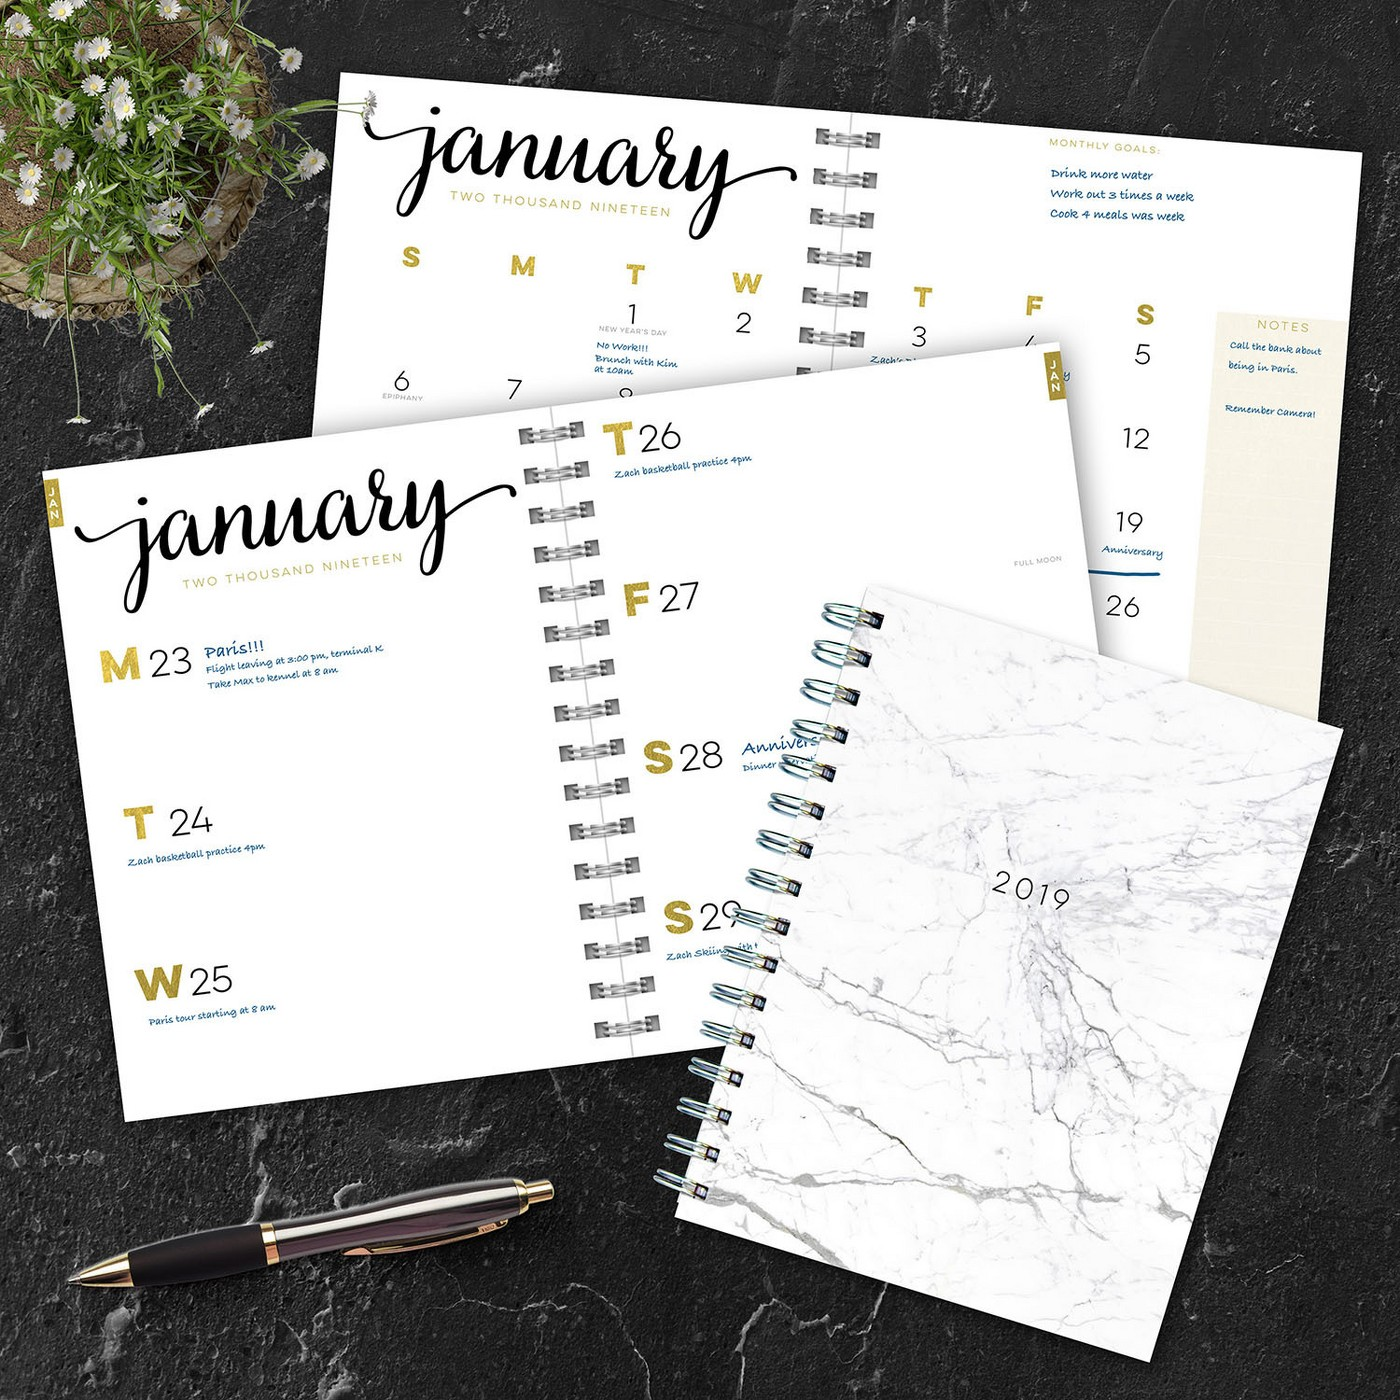 For the one one the go:  a planner! This is the perfect gift for your friends who are super organized AND for the ones who aren't. Help them get their ish together or give them a beautified place to keep their ish straight. Works out both ways.   //source